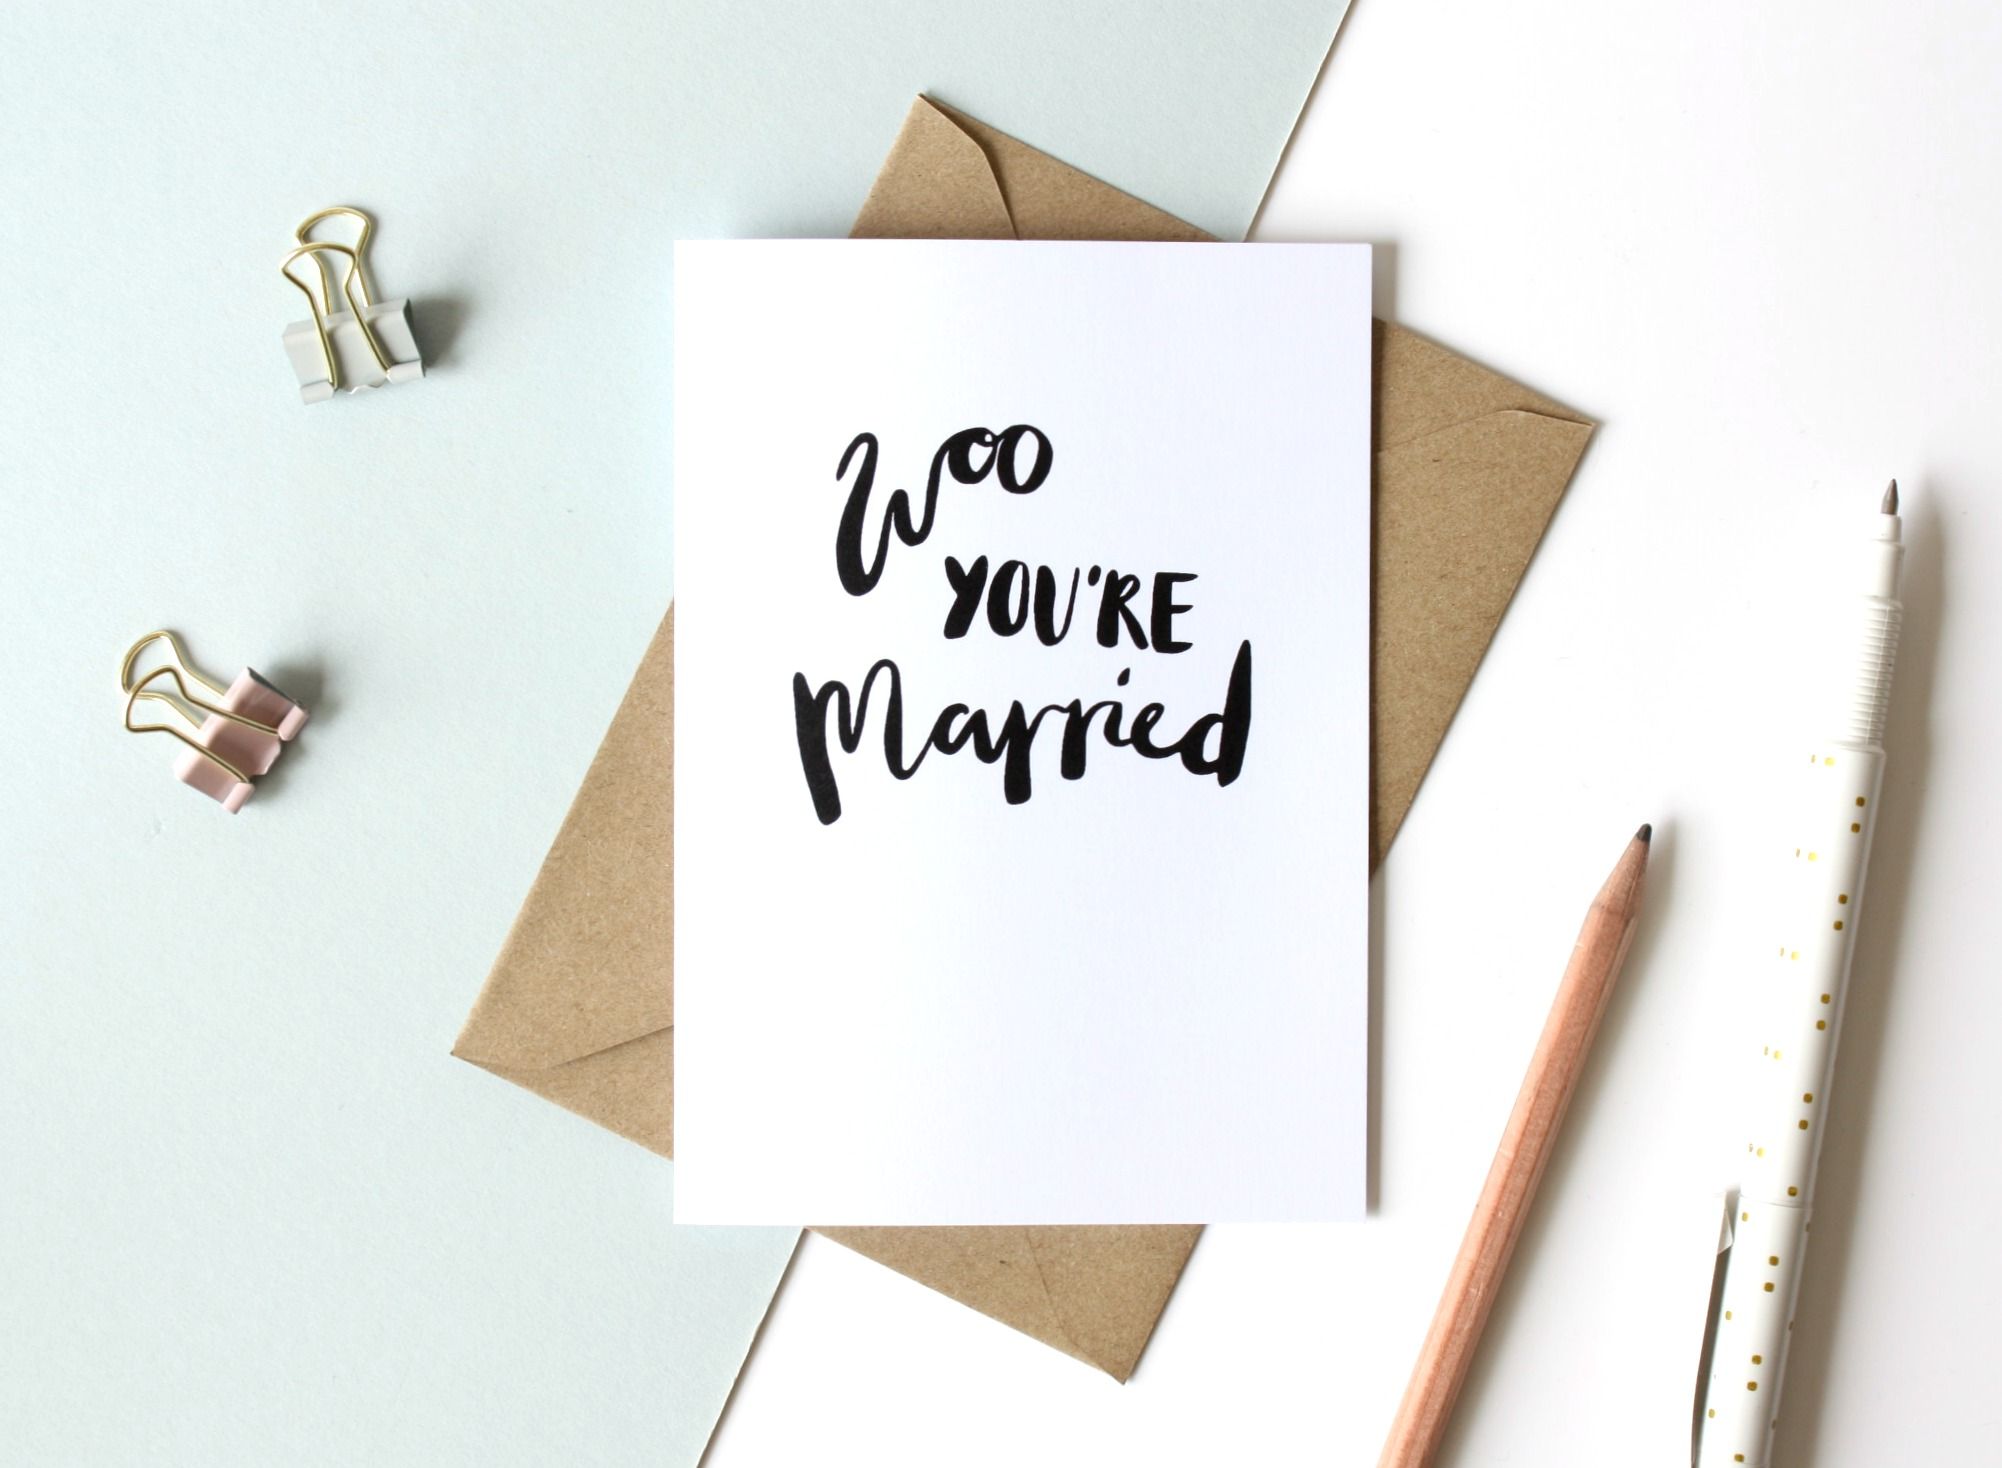 woo you're married greetings card flat lay